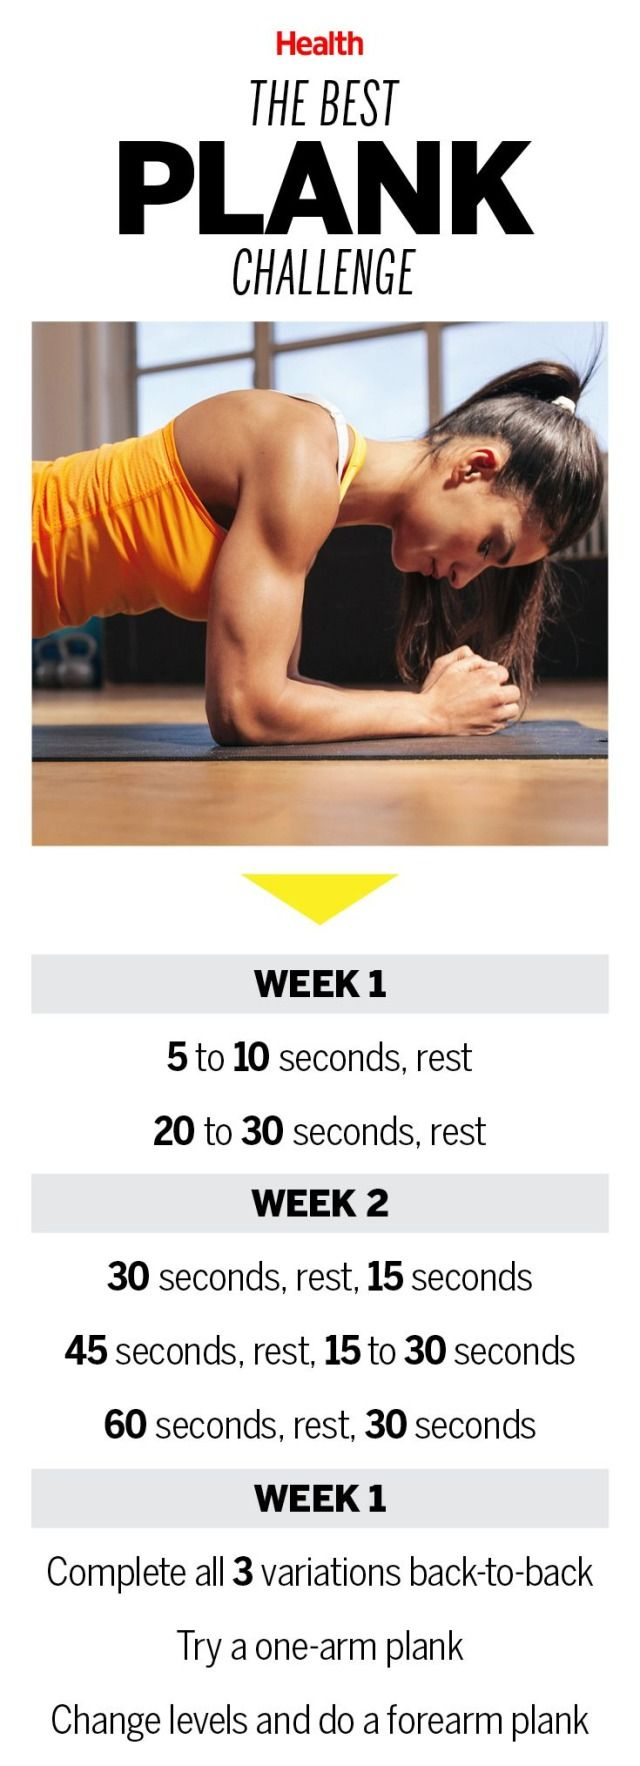 Tighten Your Core in 21 Days With This Plank Challenge: Take the classic strength move from short and static to minutes-long and dynamic with this three-week plan. | Health.com